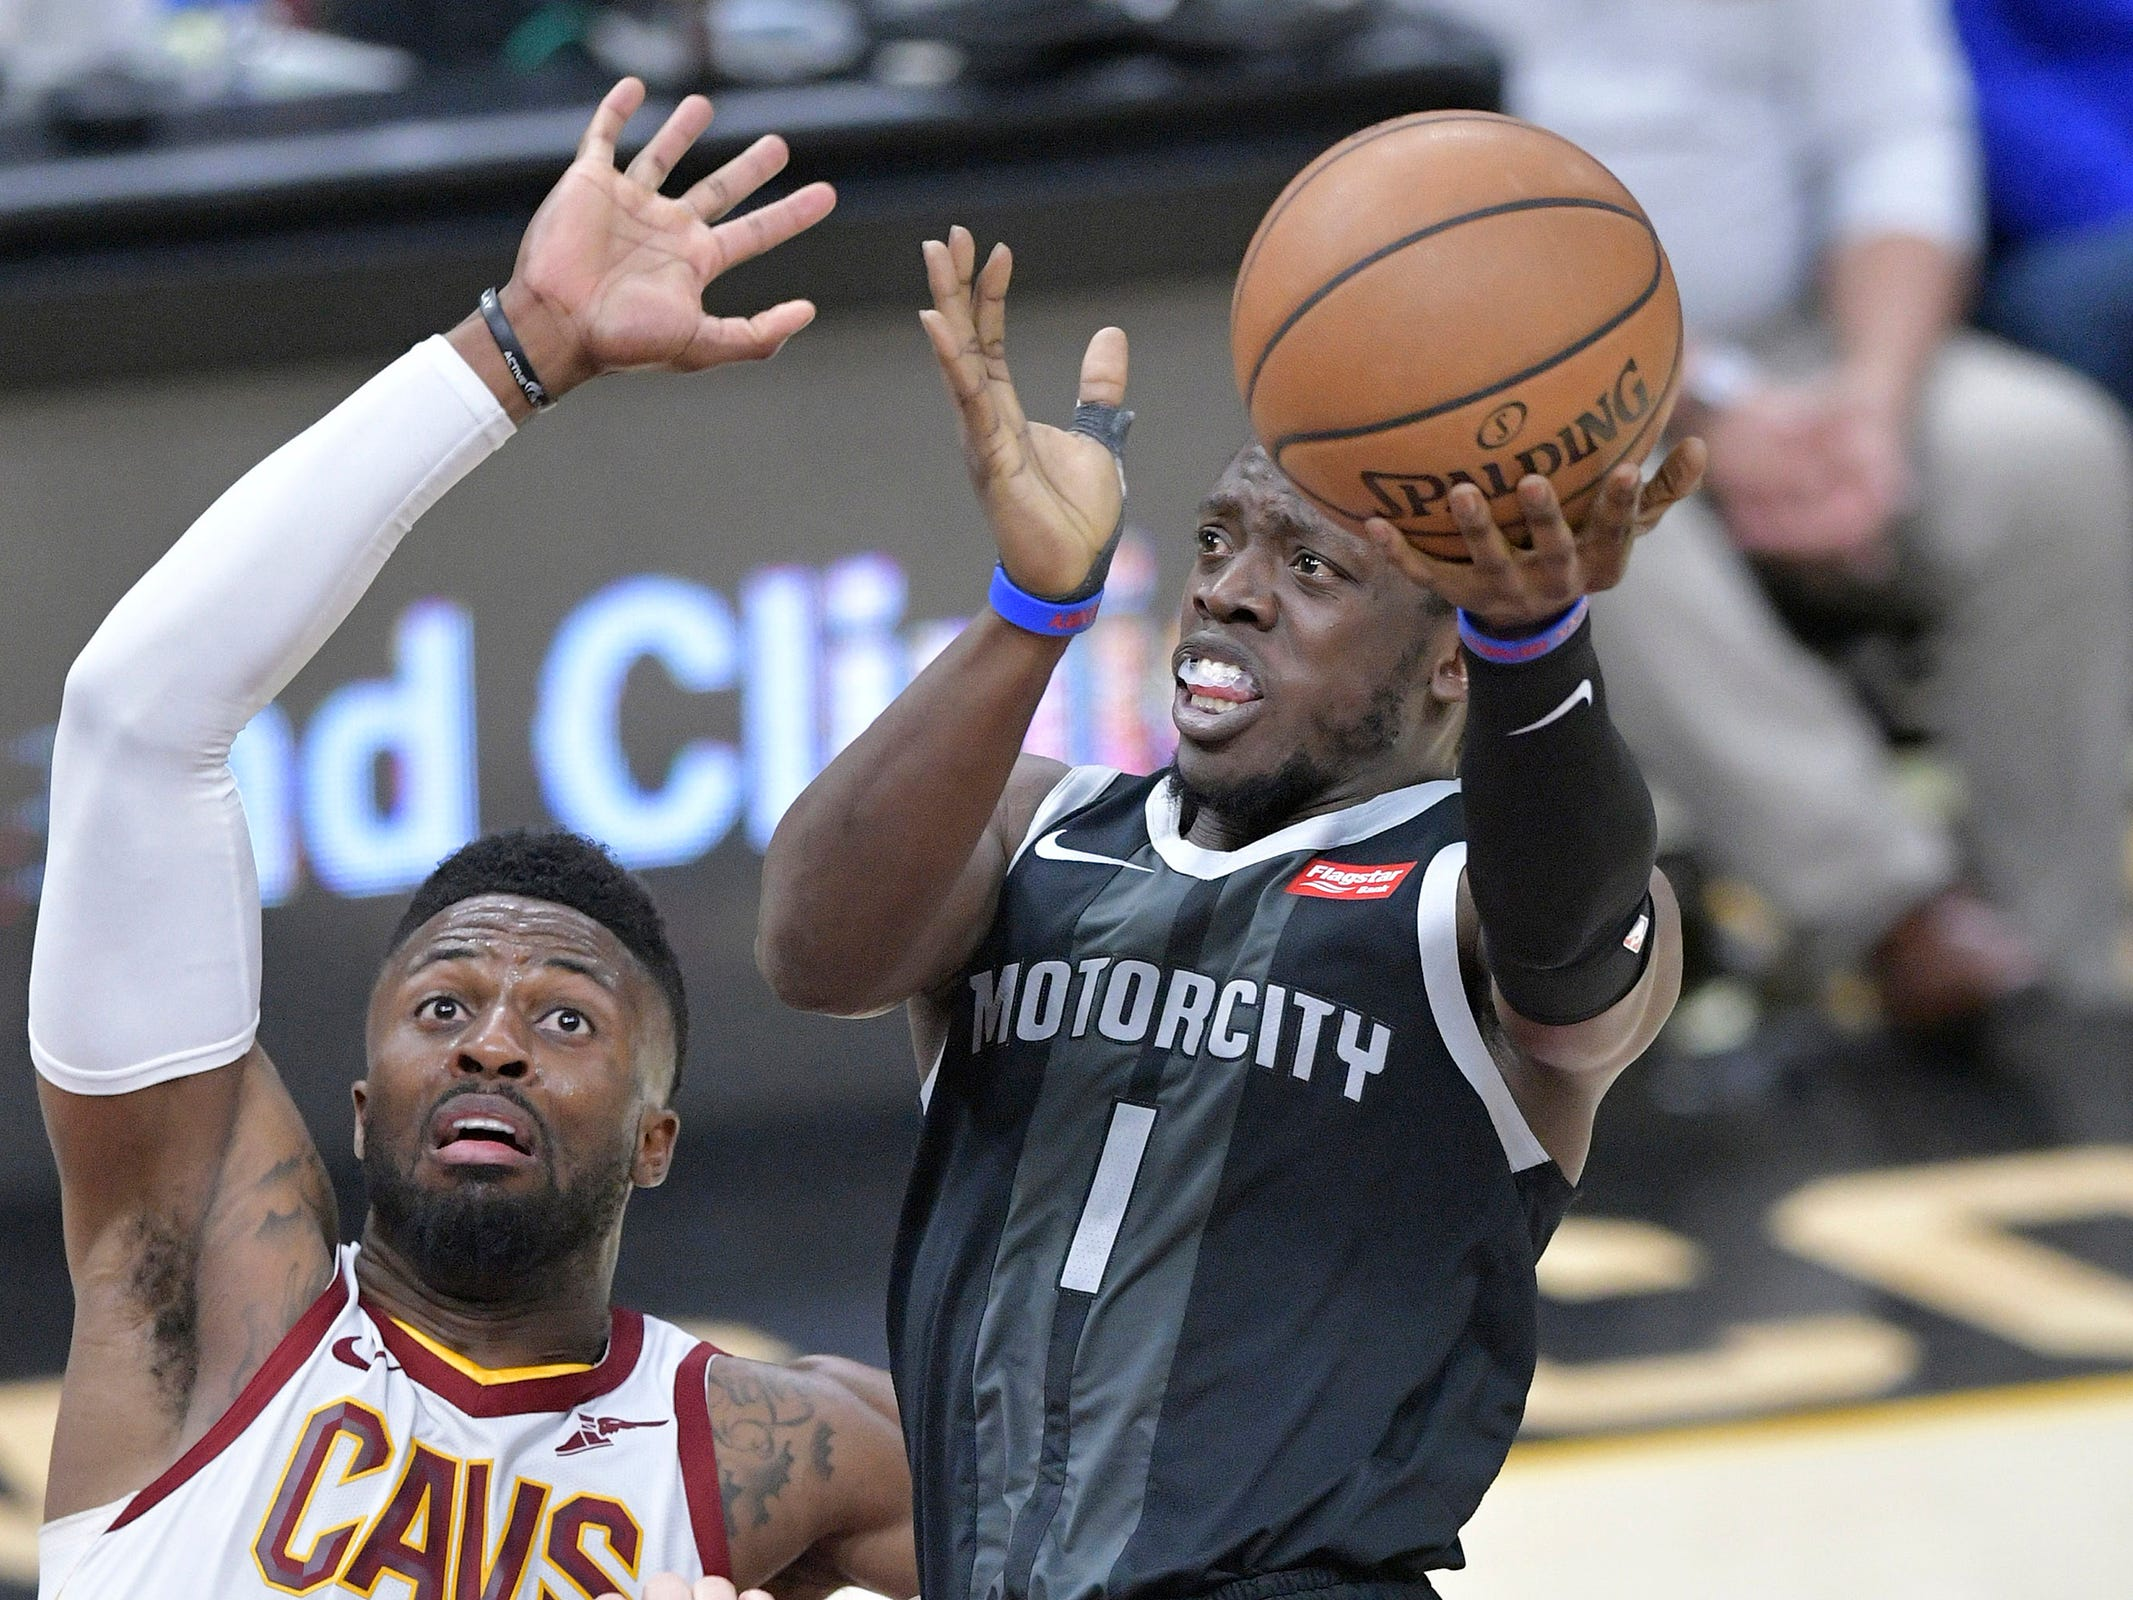 Detroit Pistons guard Reggie Jackson drives against Cleveland Cavaliers guard David Nwaba in the fourth quarter at Quicken Loans Arena, March 18, 2019.